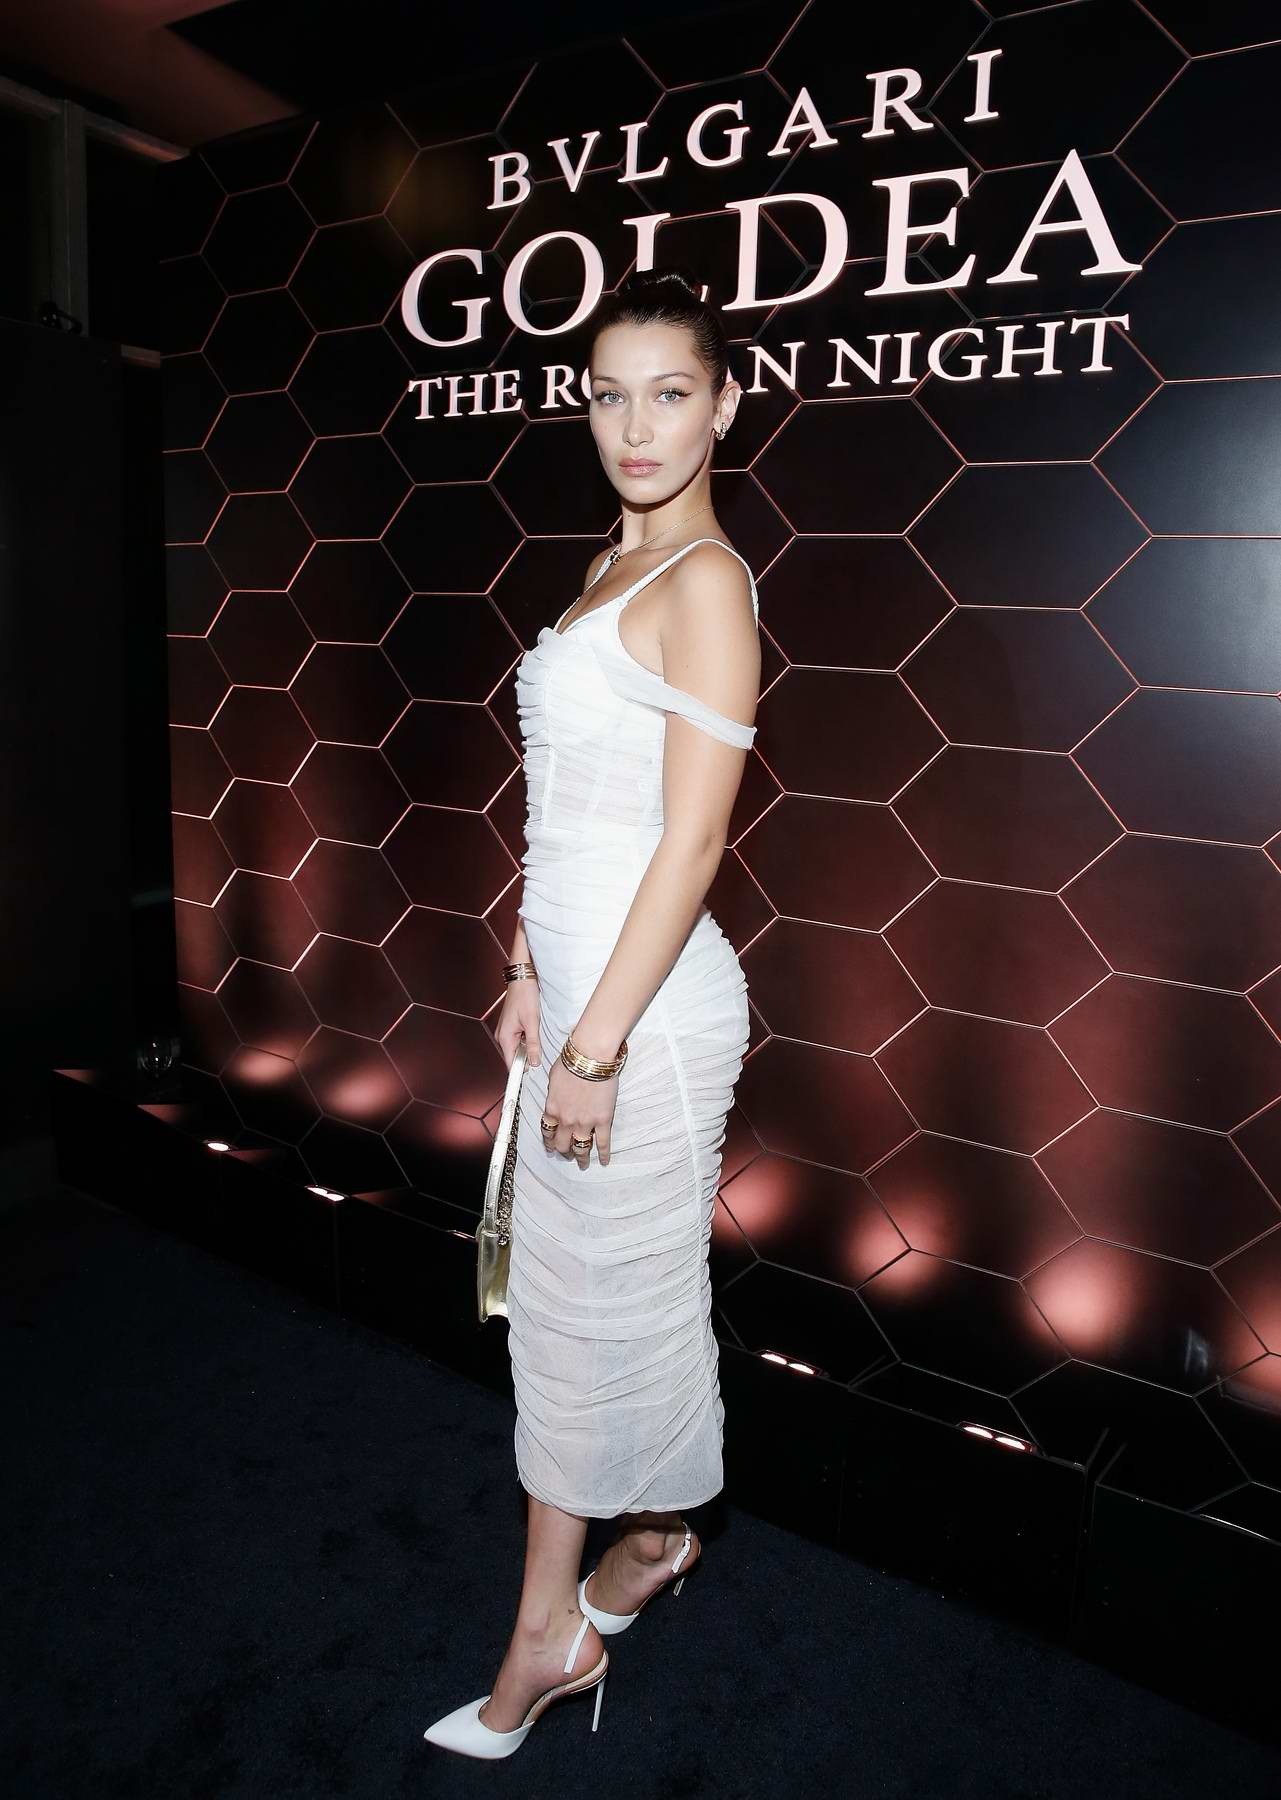 Bella Hadid attends BVLGARI Goldea The Roman Night fragrance launch party during NYFW in New York City